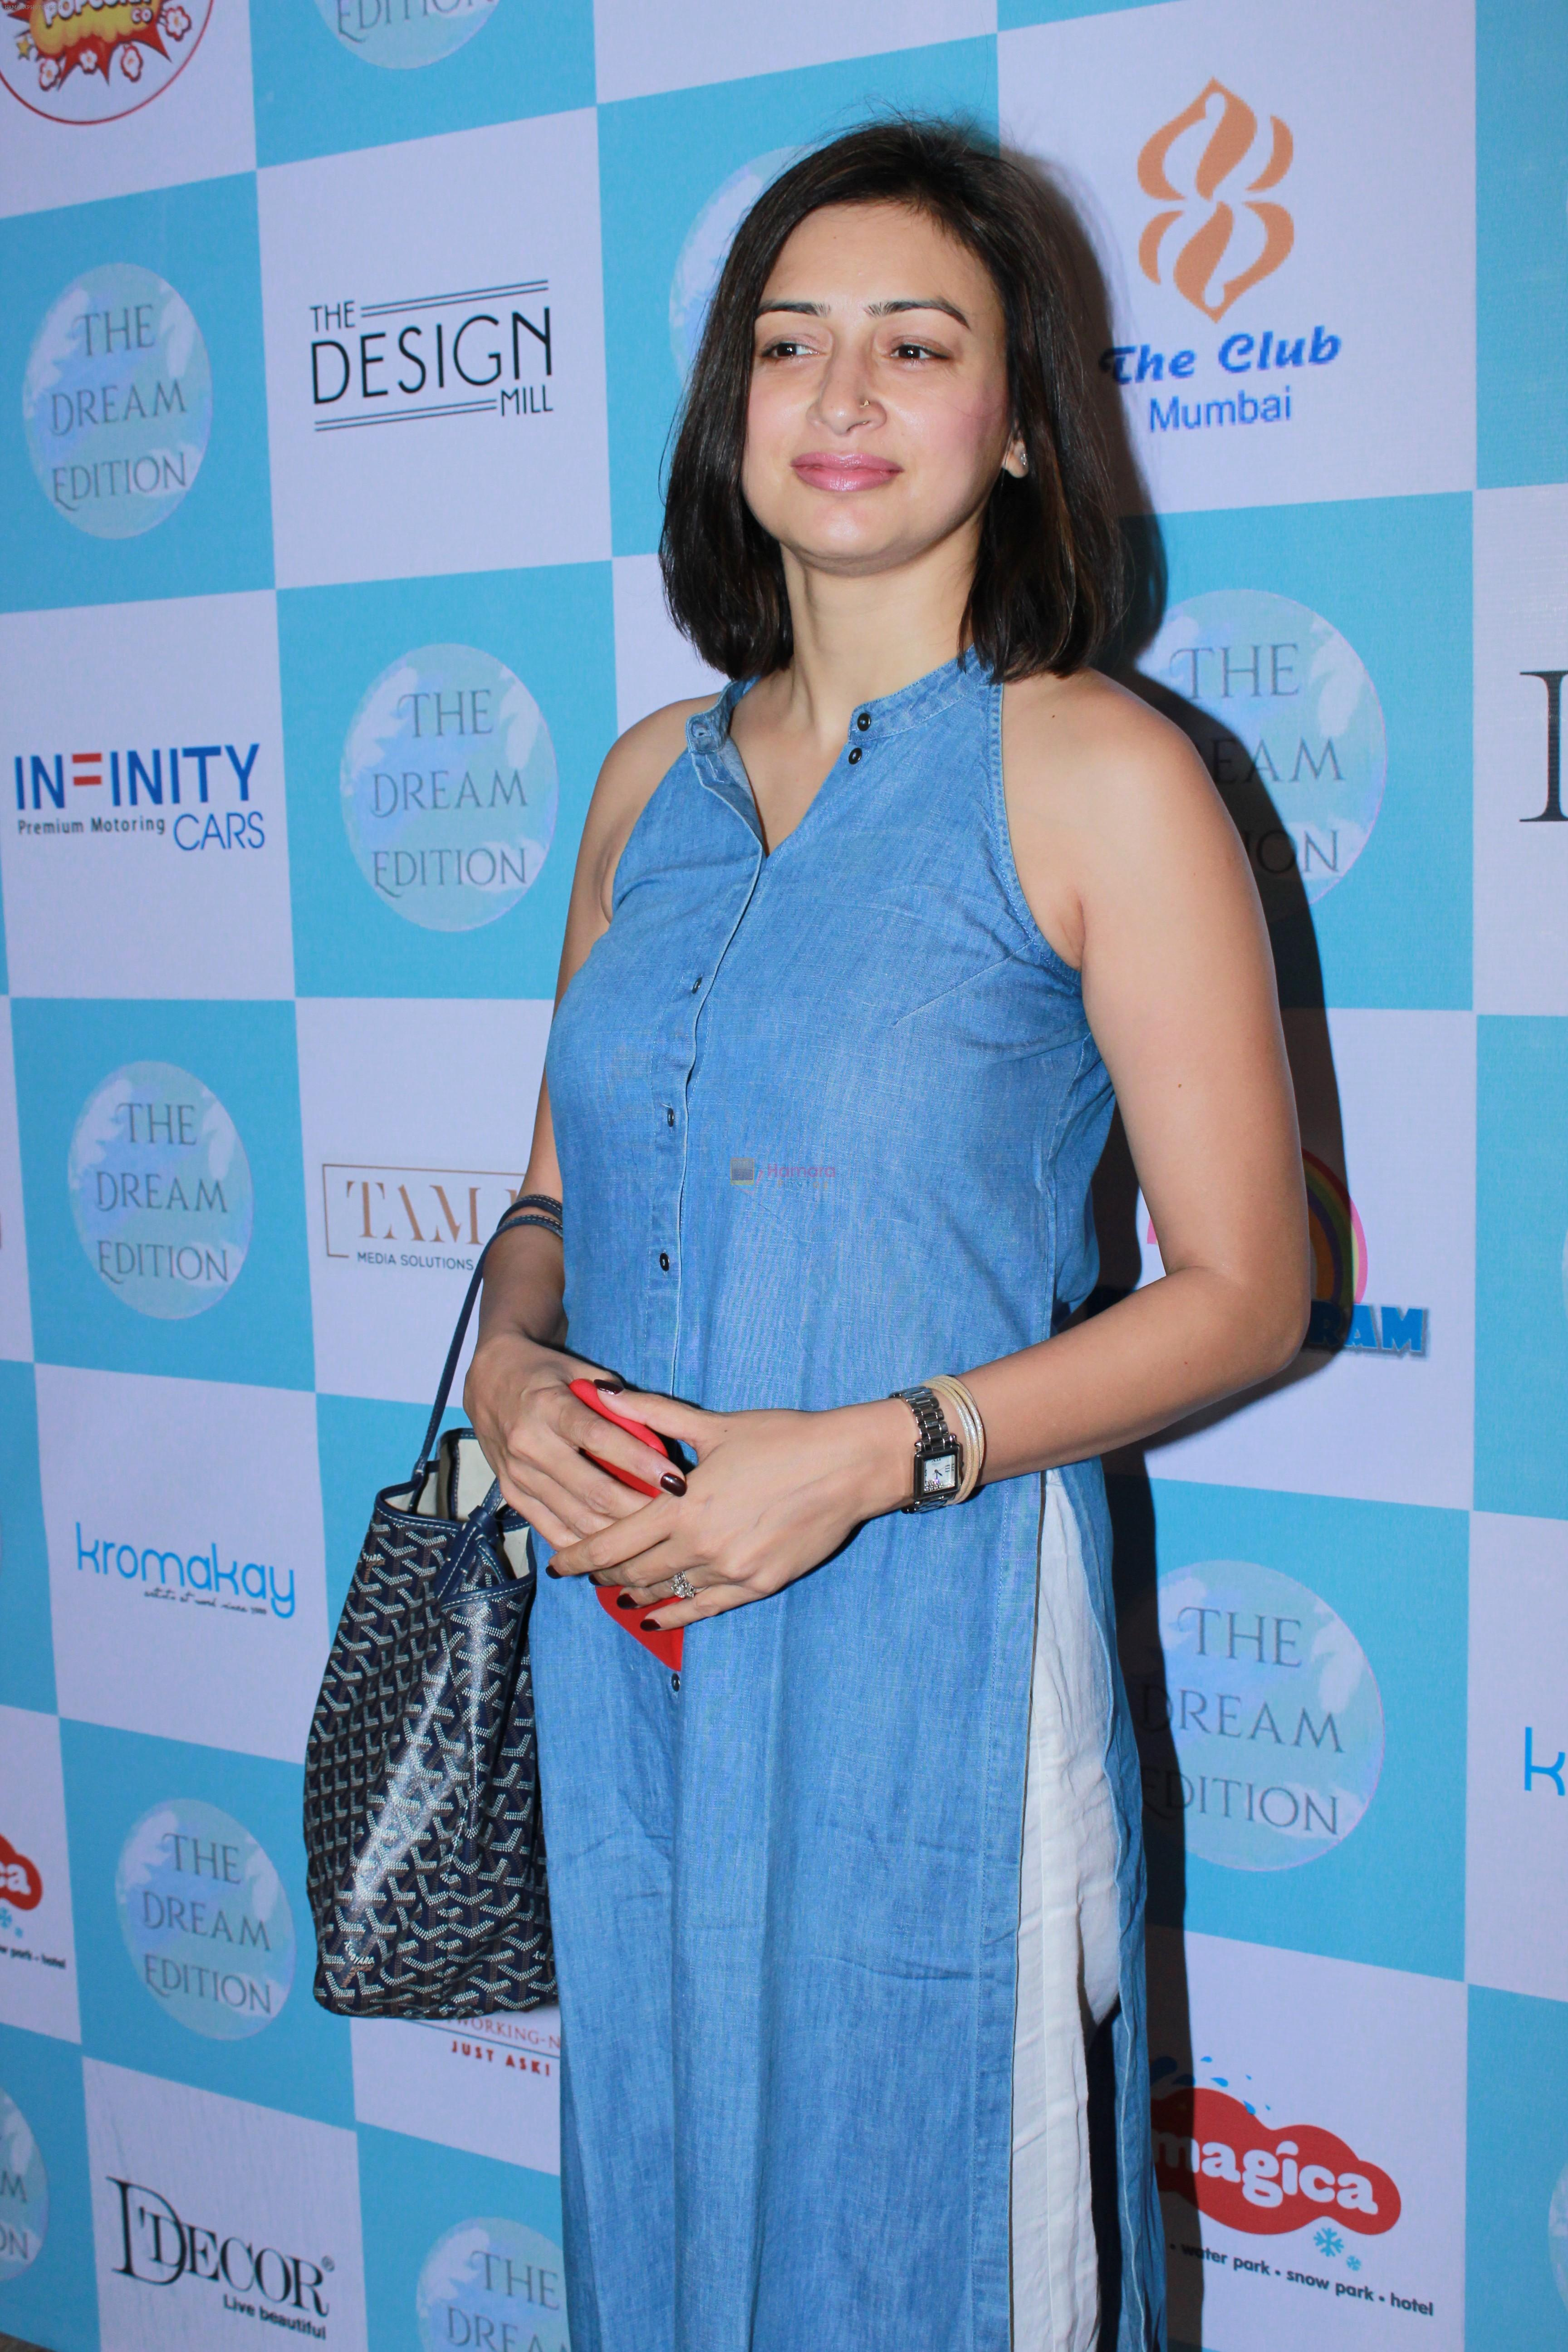 Gauri Tejwani At The Dream Edition Lifestyle Fare For Mommies & Kids on 28th AUg 2019